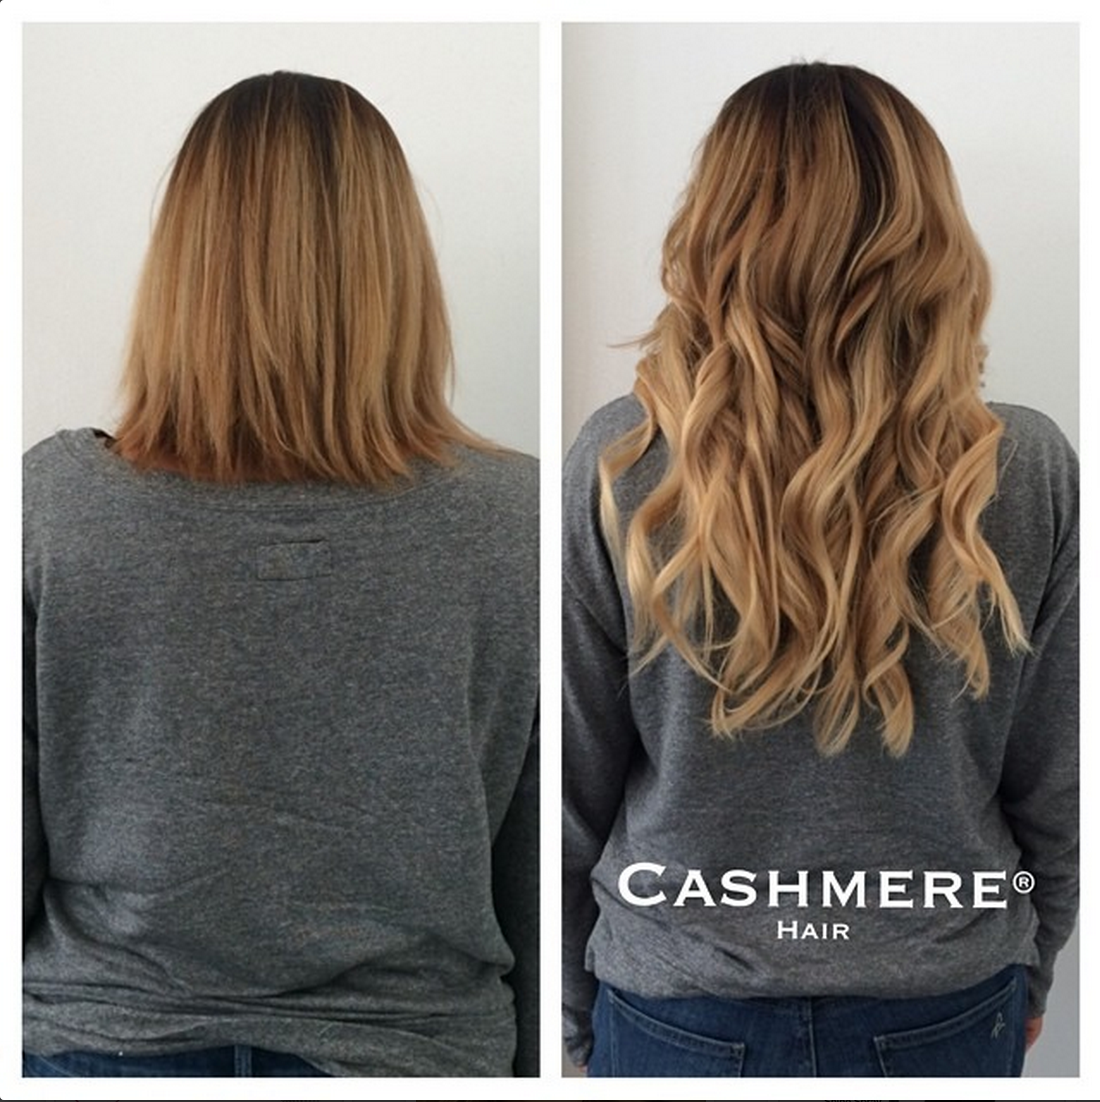 Cashmere Hair Before & After. CASHMERE HAIR Clip In